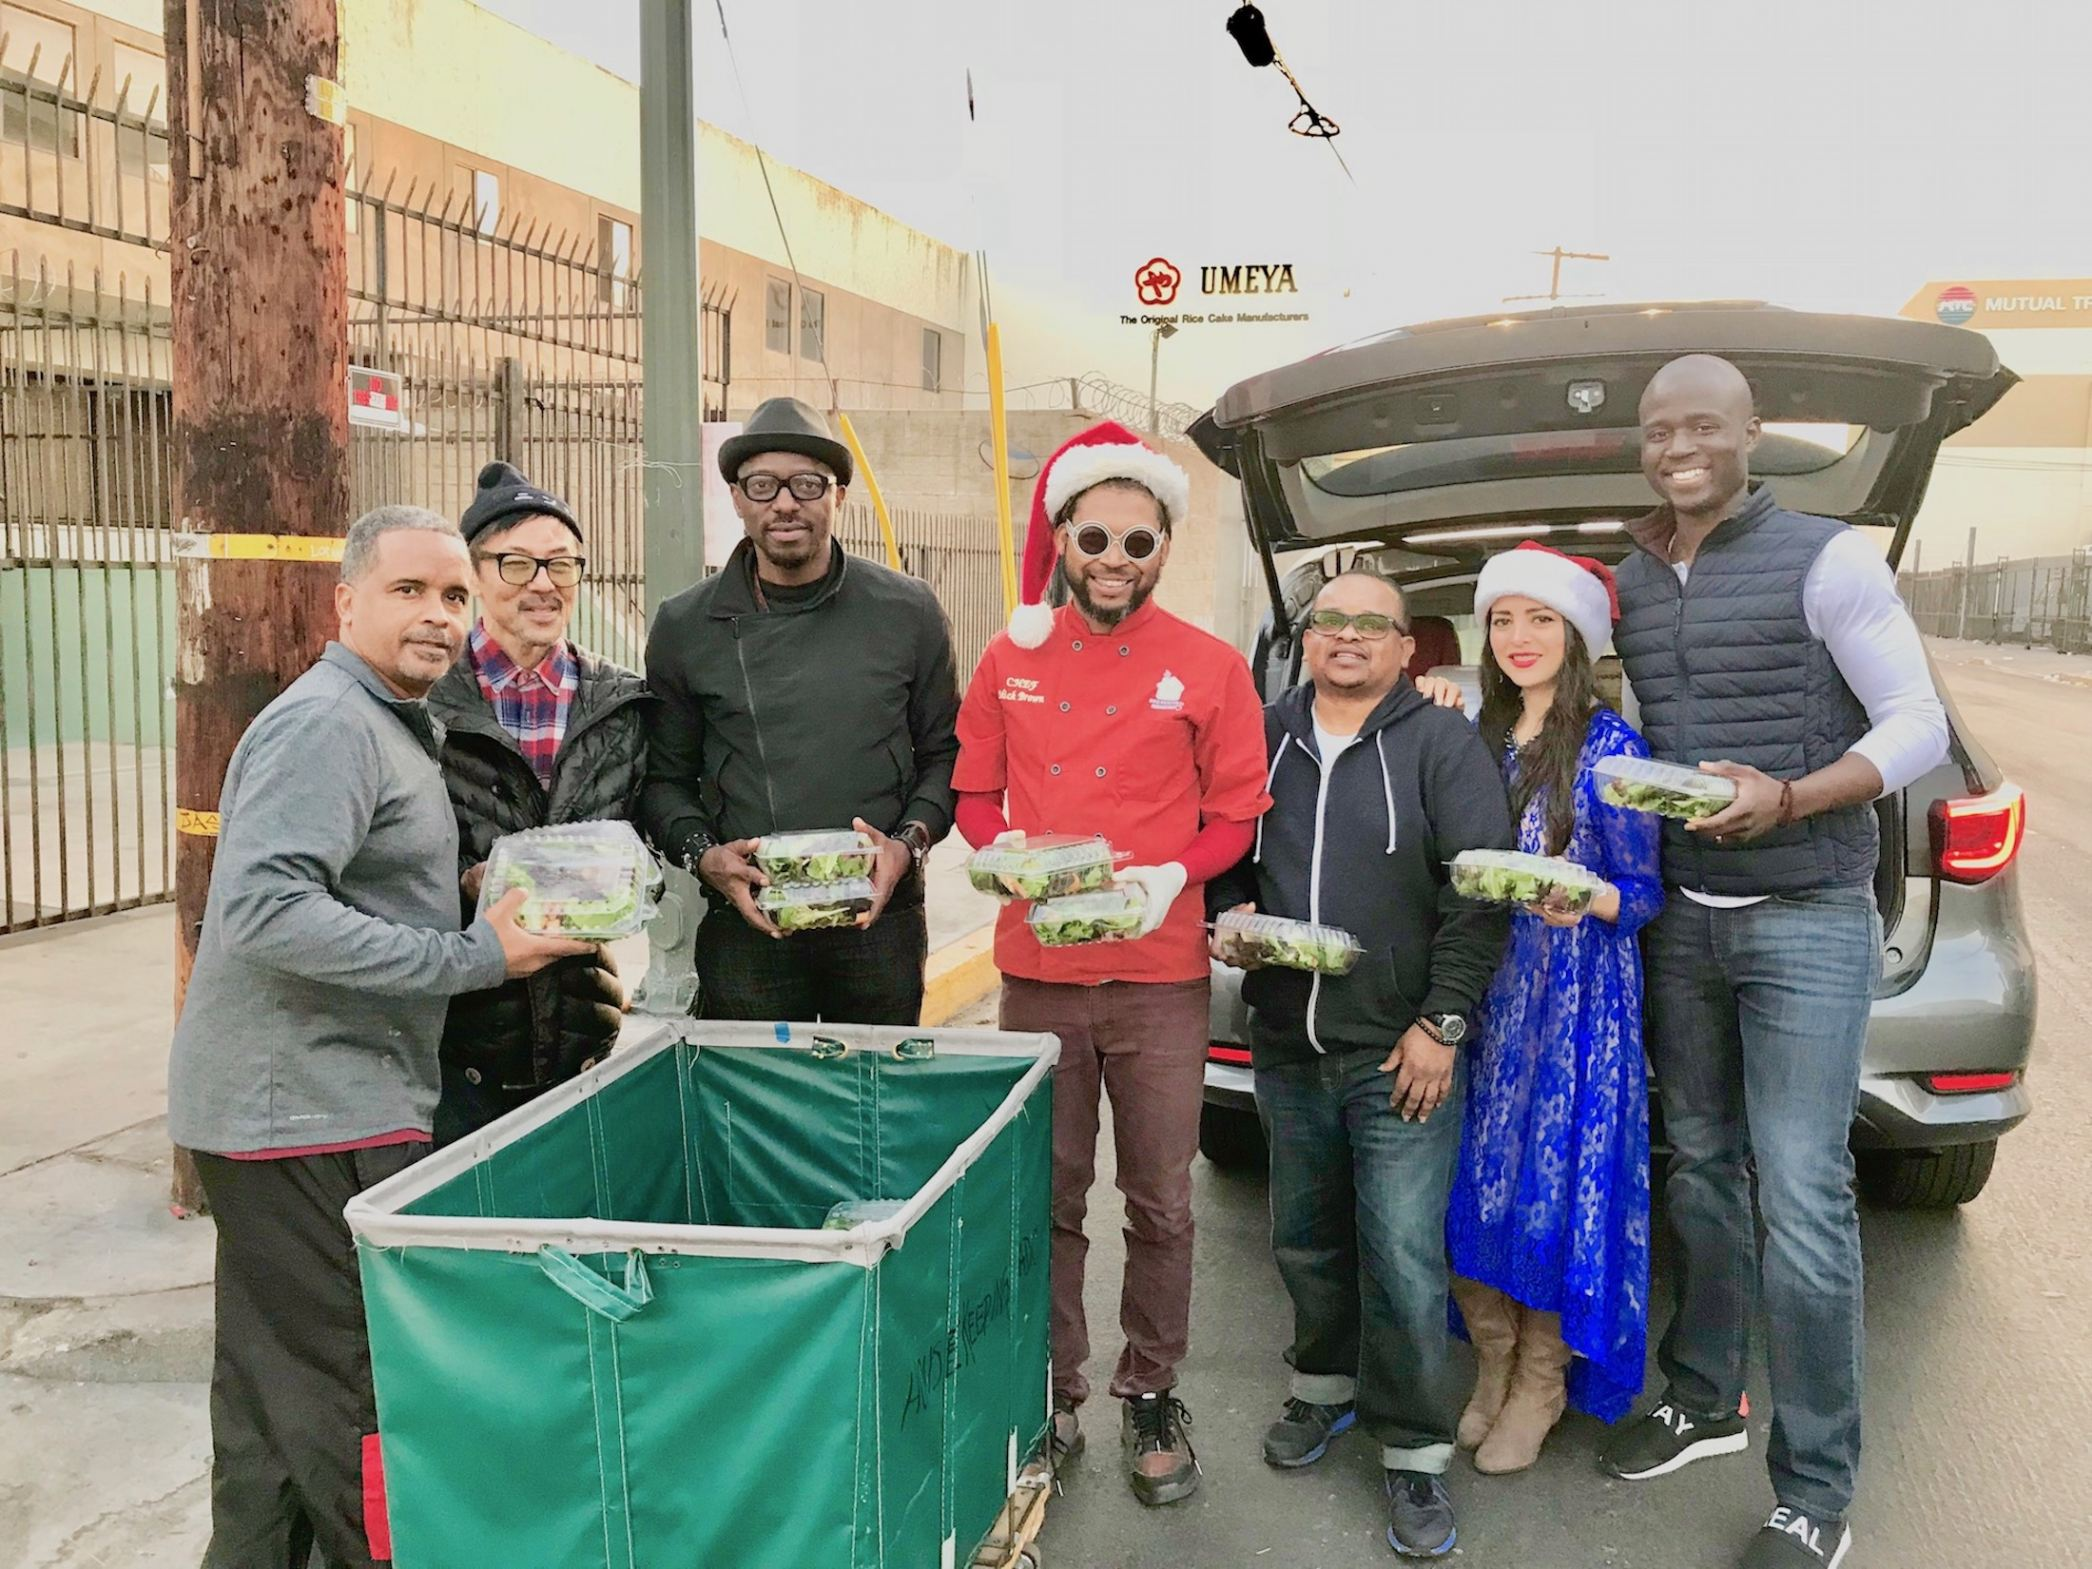 Chef Mick Brown as Santa on Christmas Eve distributing salads on LA Skid Row